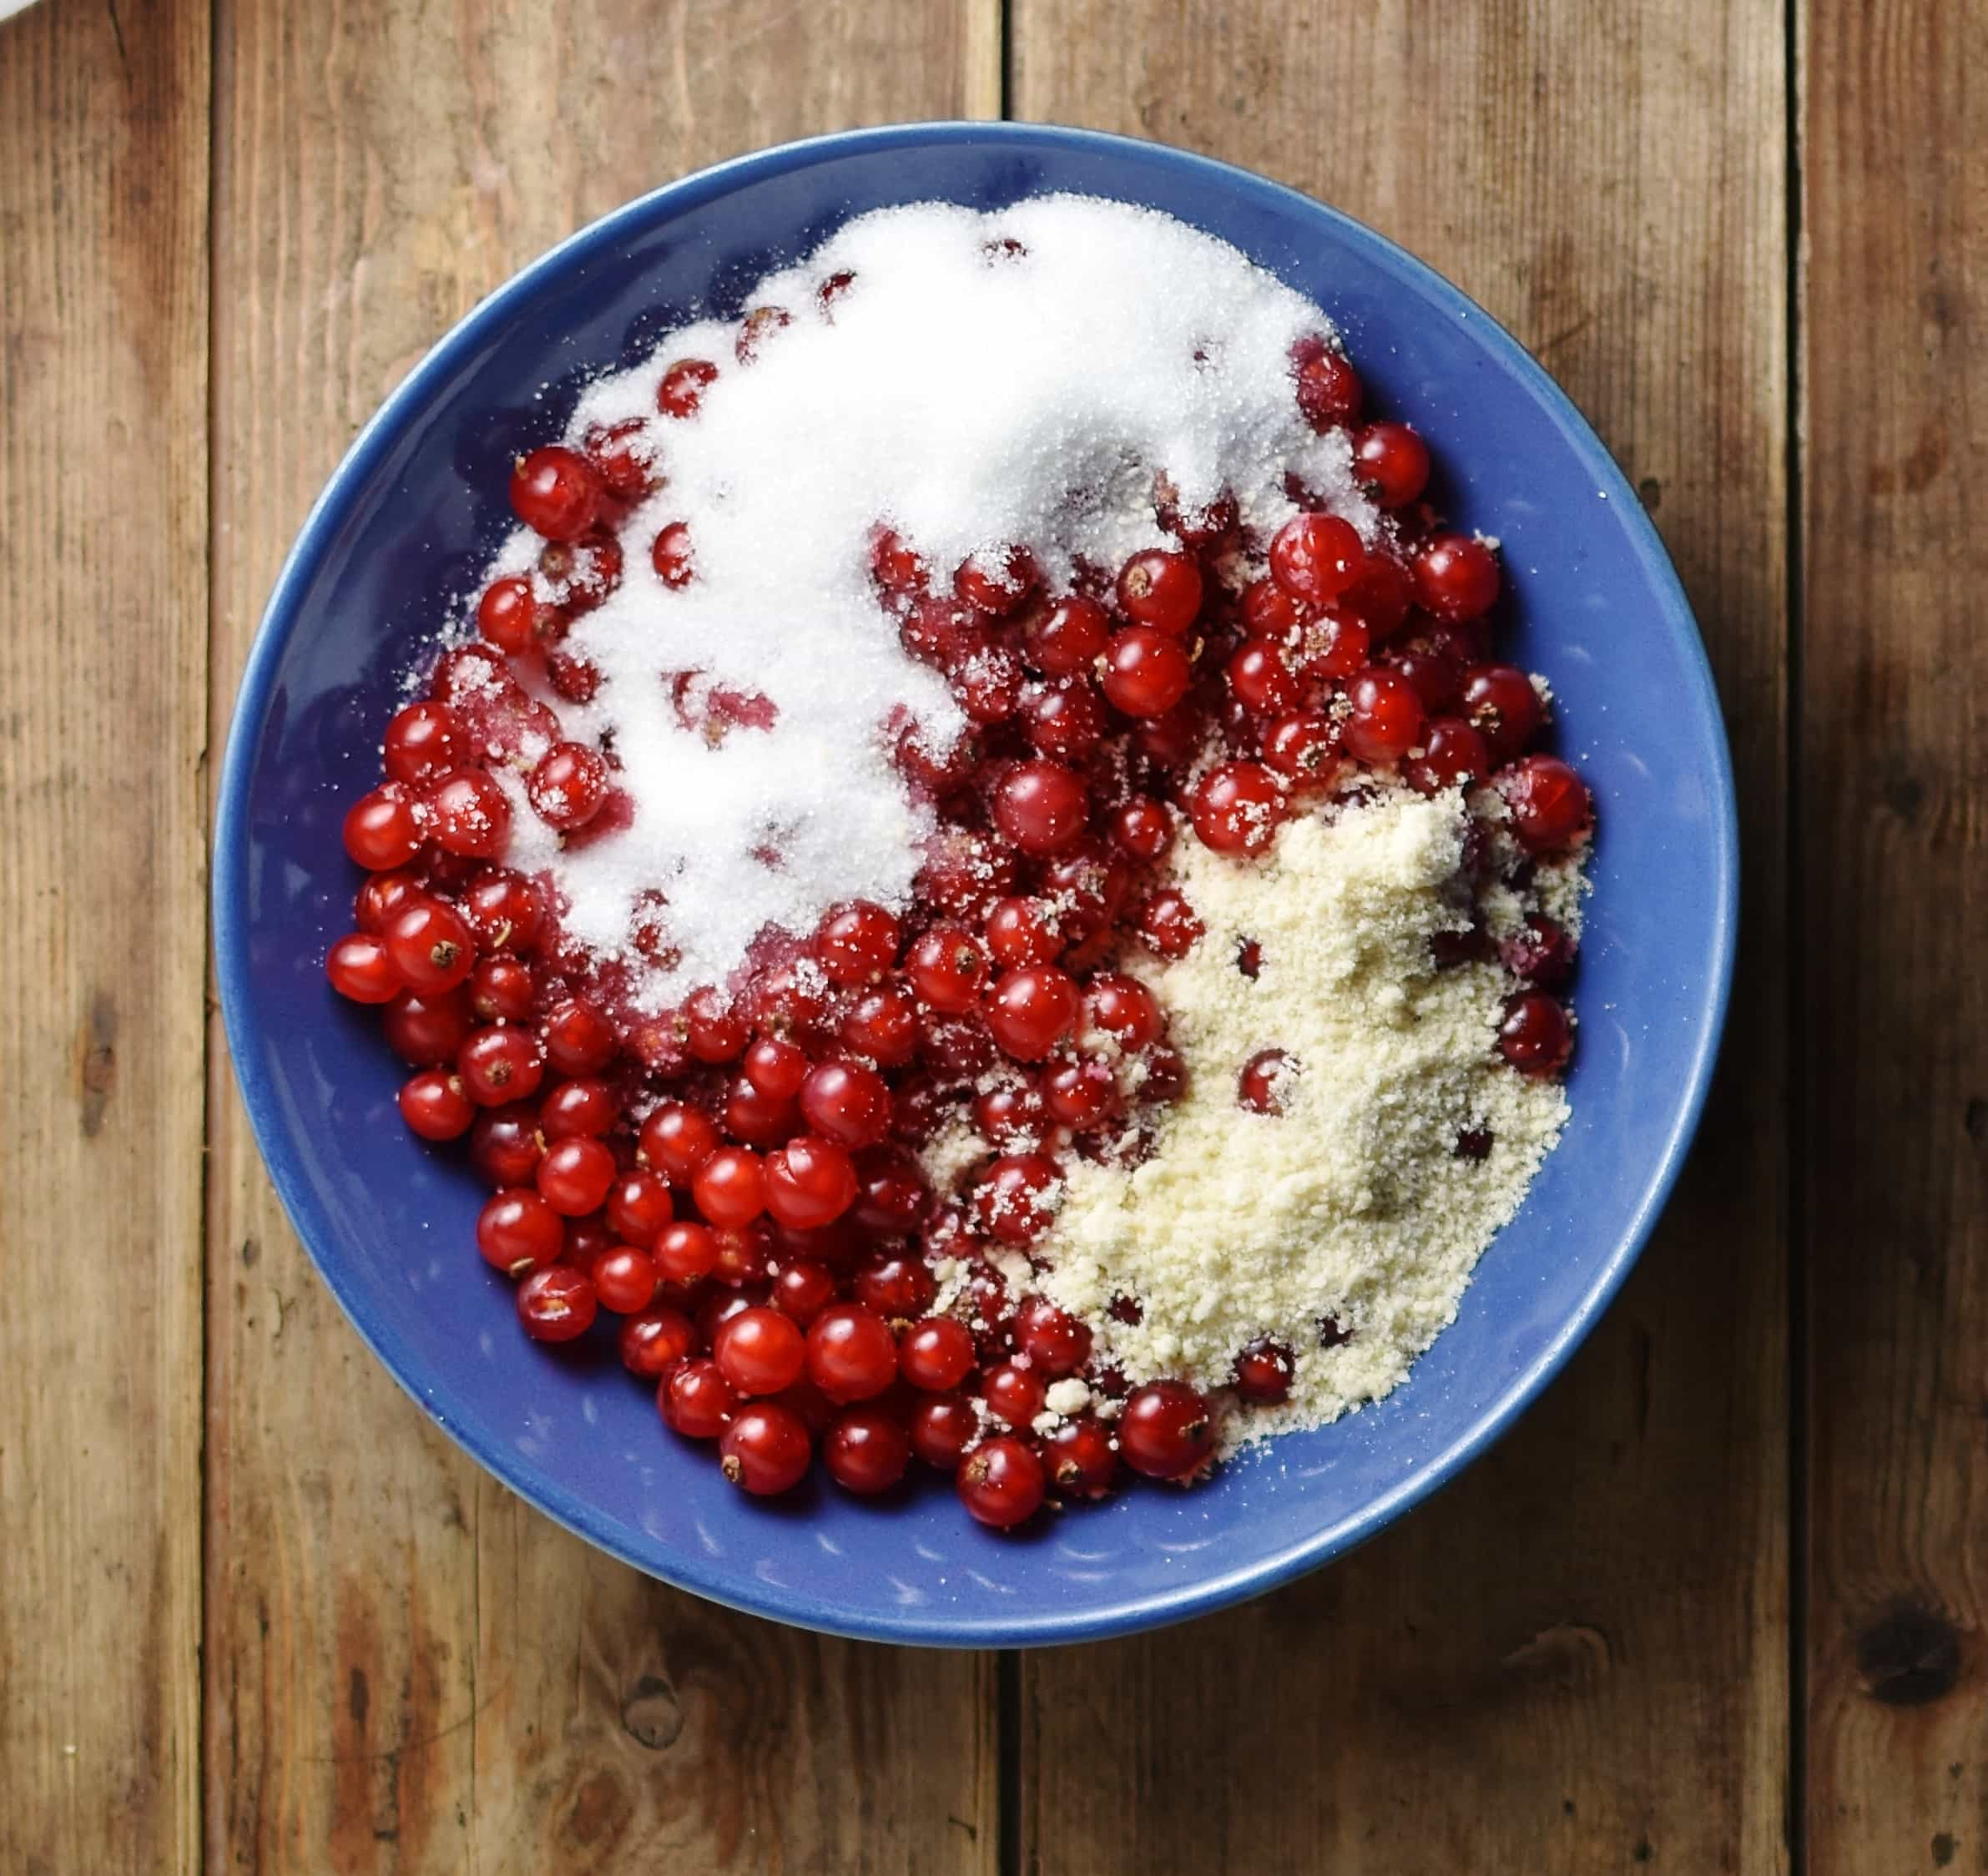 Redcurrants with sugar and ground almonds inside blue bowl.